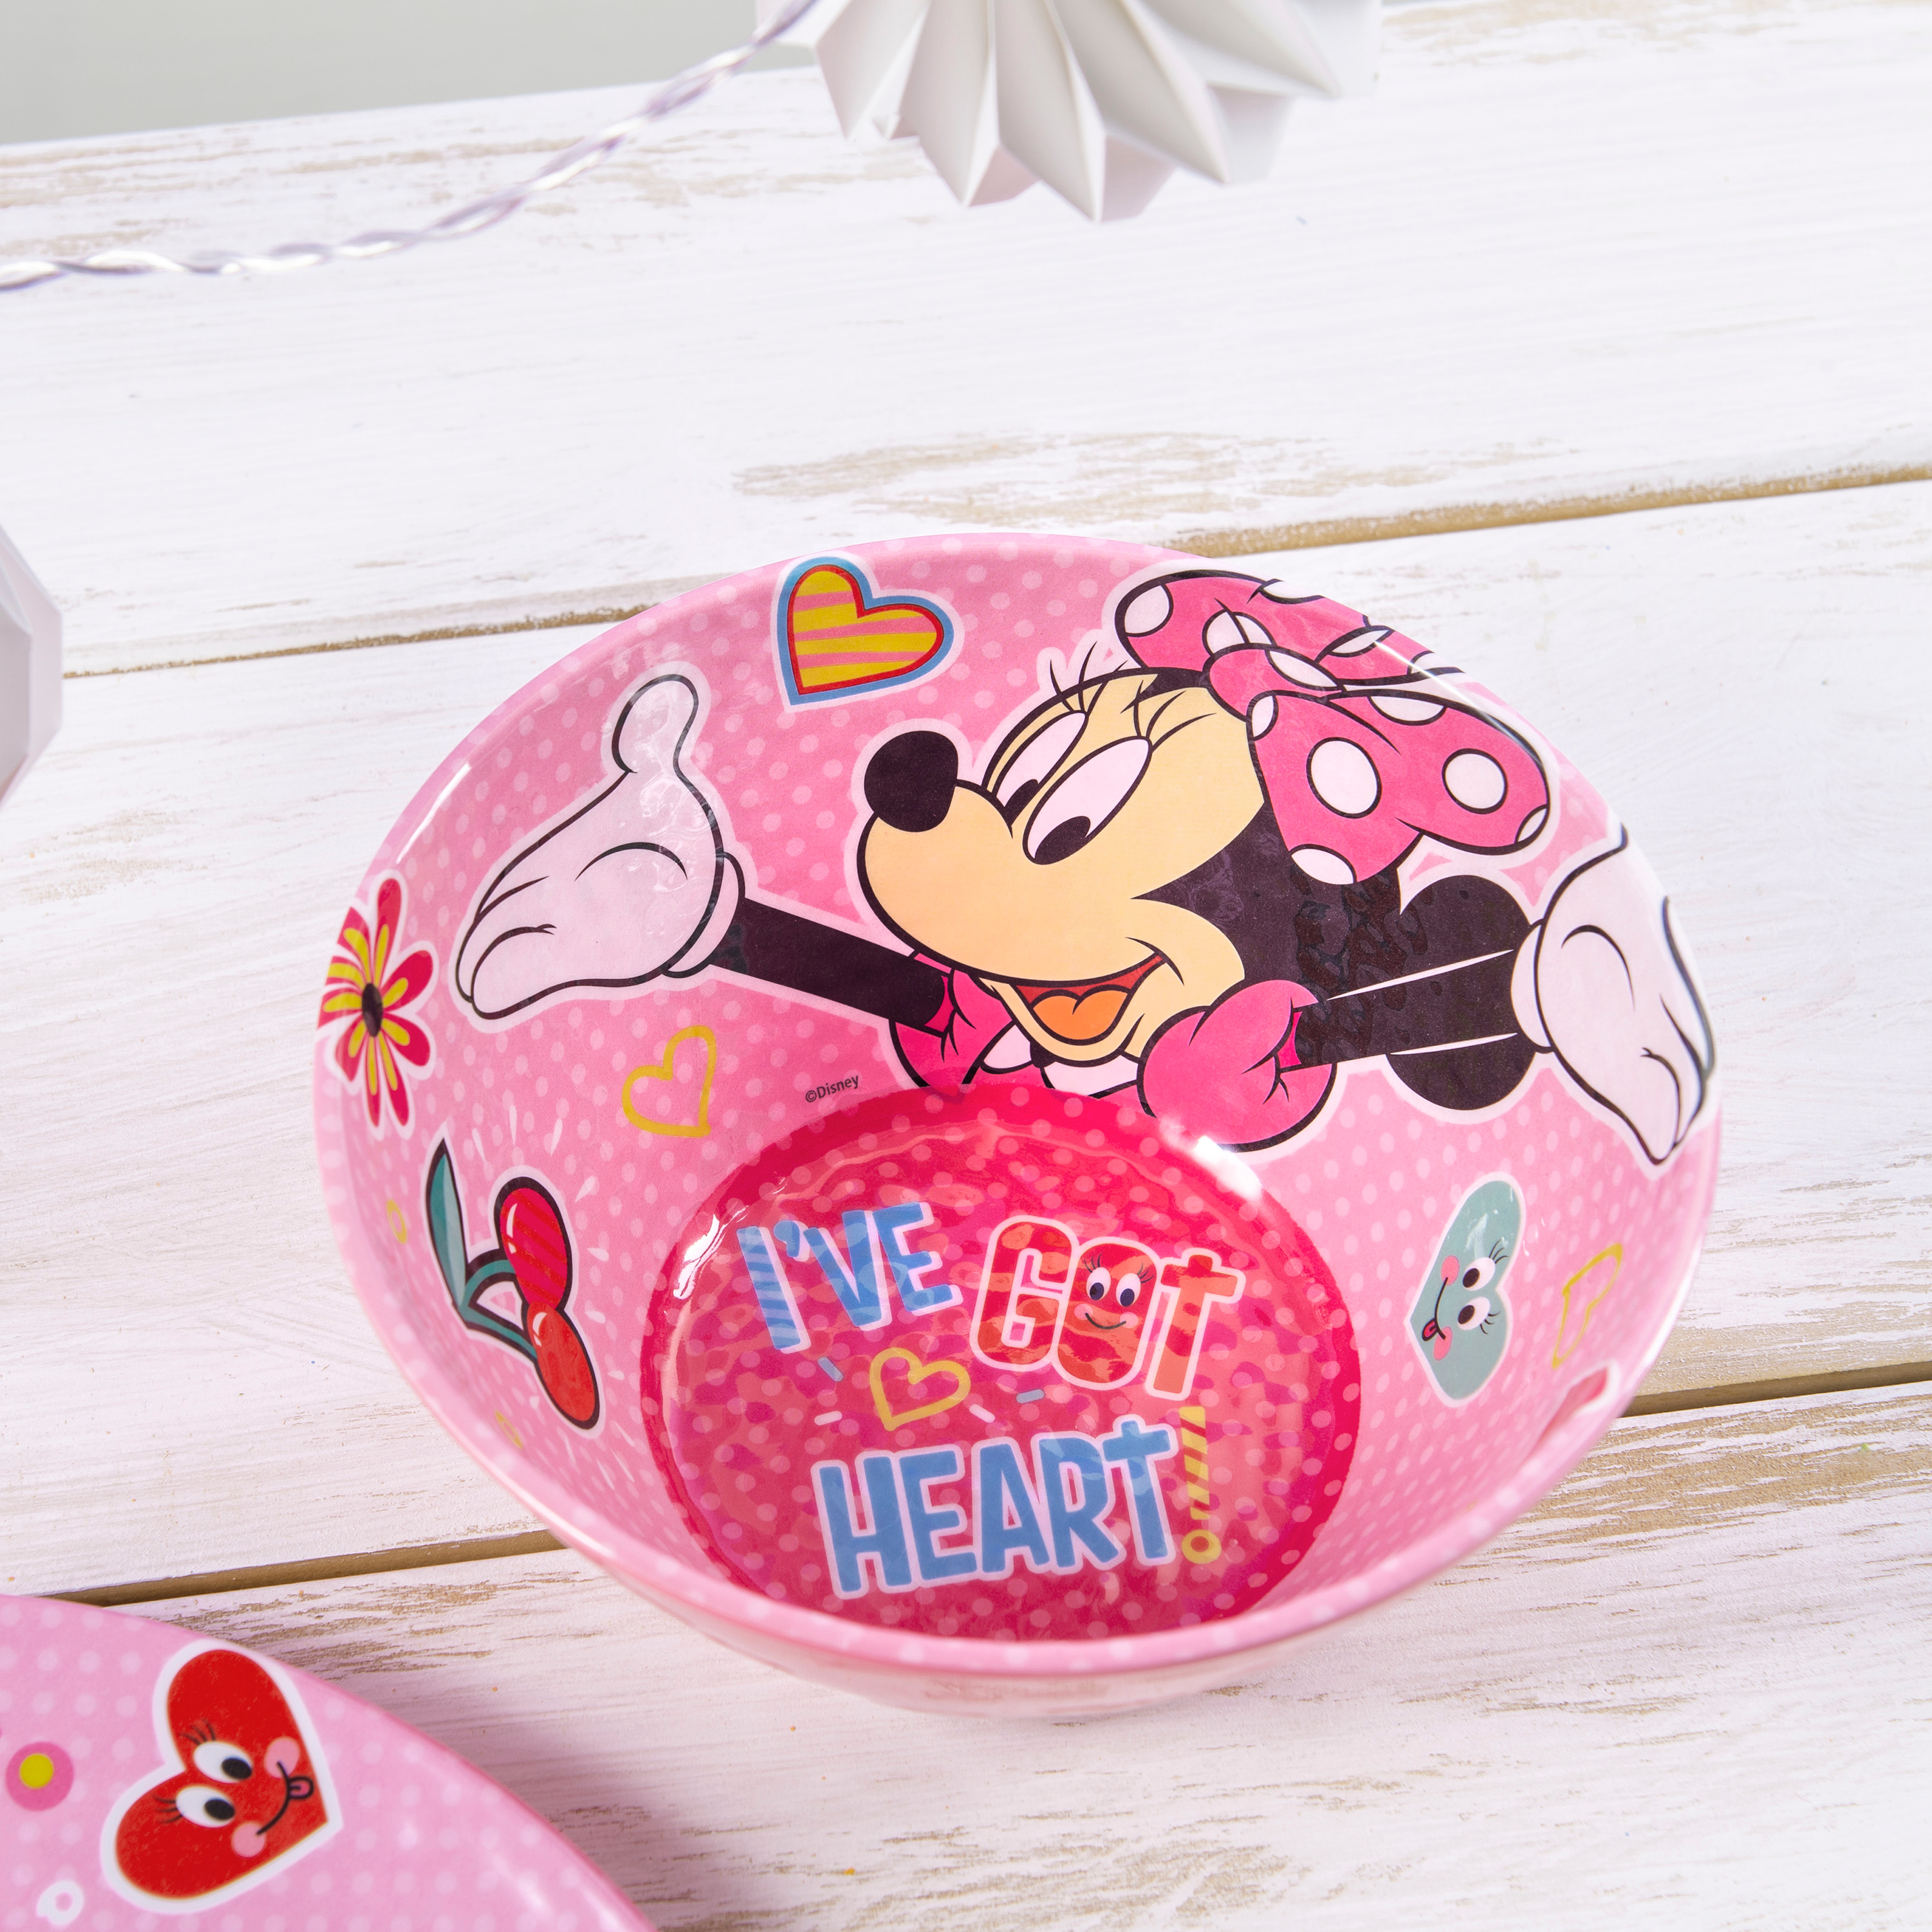 Disney Kids 9-inch Plate and 6-inch Bowl Set, Minnie Mouse, 2-piece set slideshow image 7